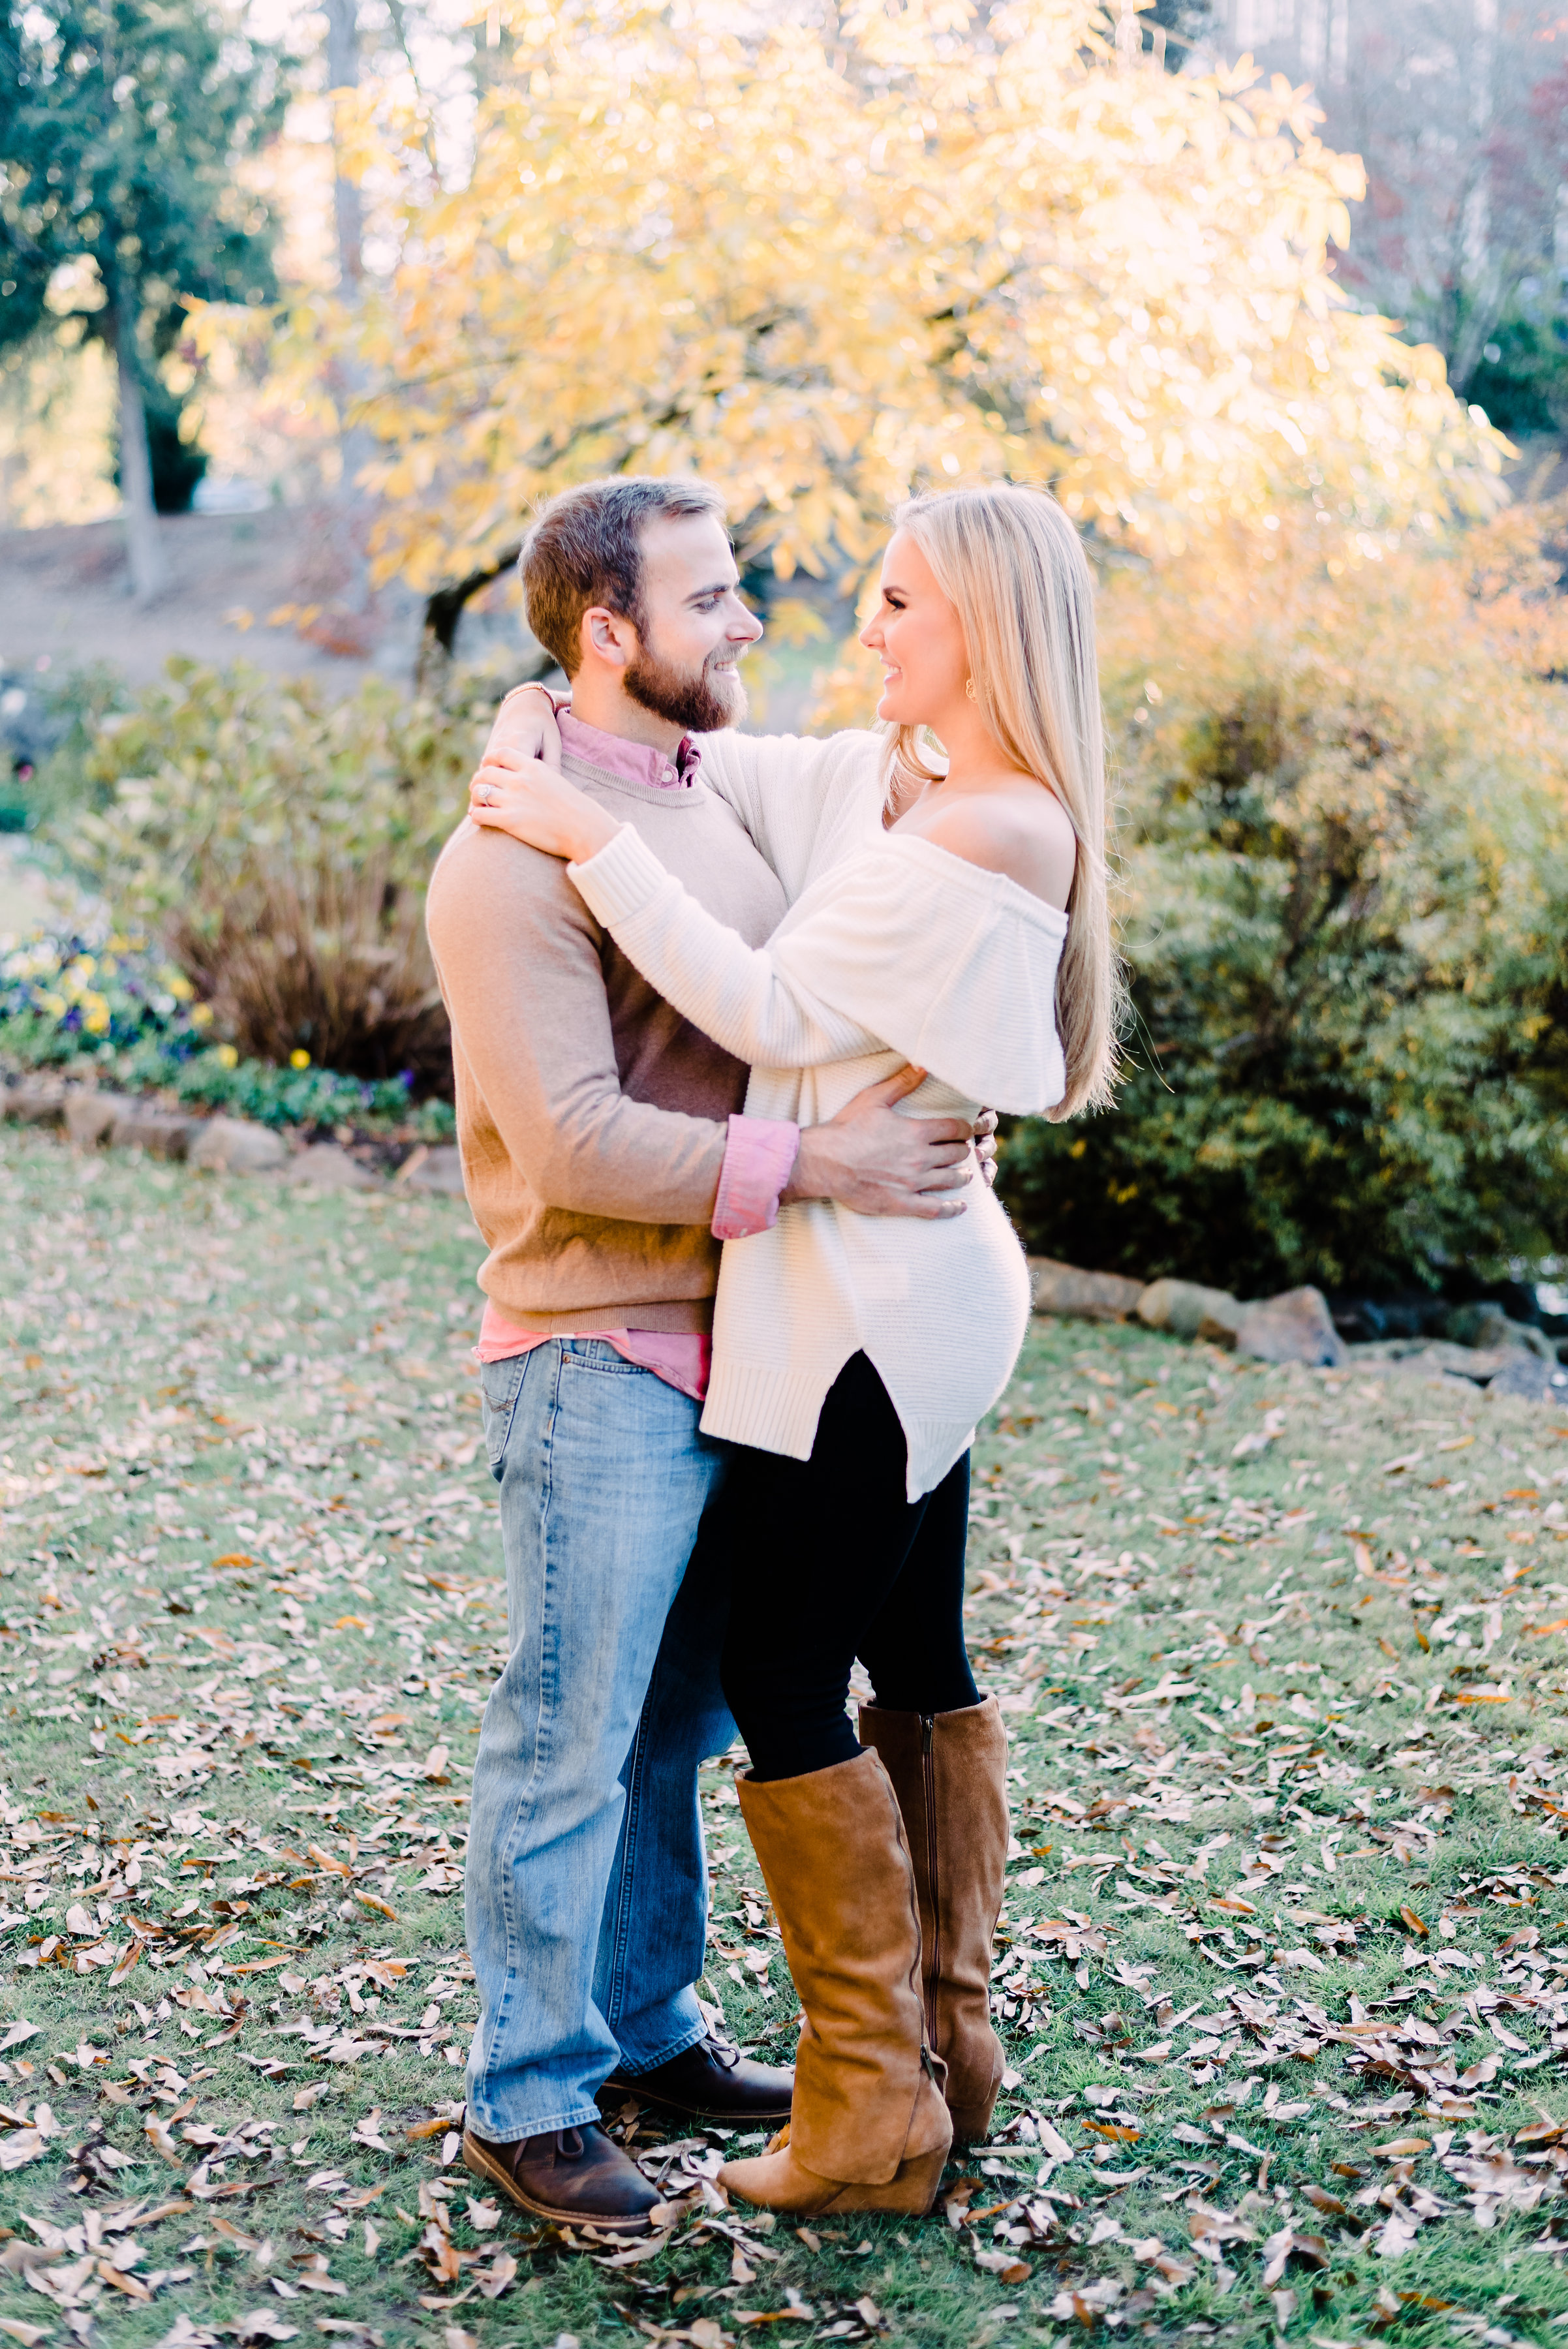 Kirby_Mobley_engaged-32.jpg